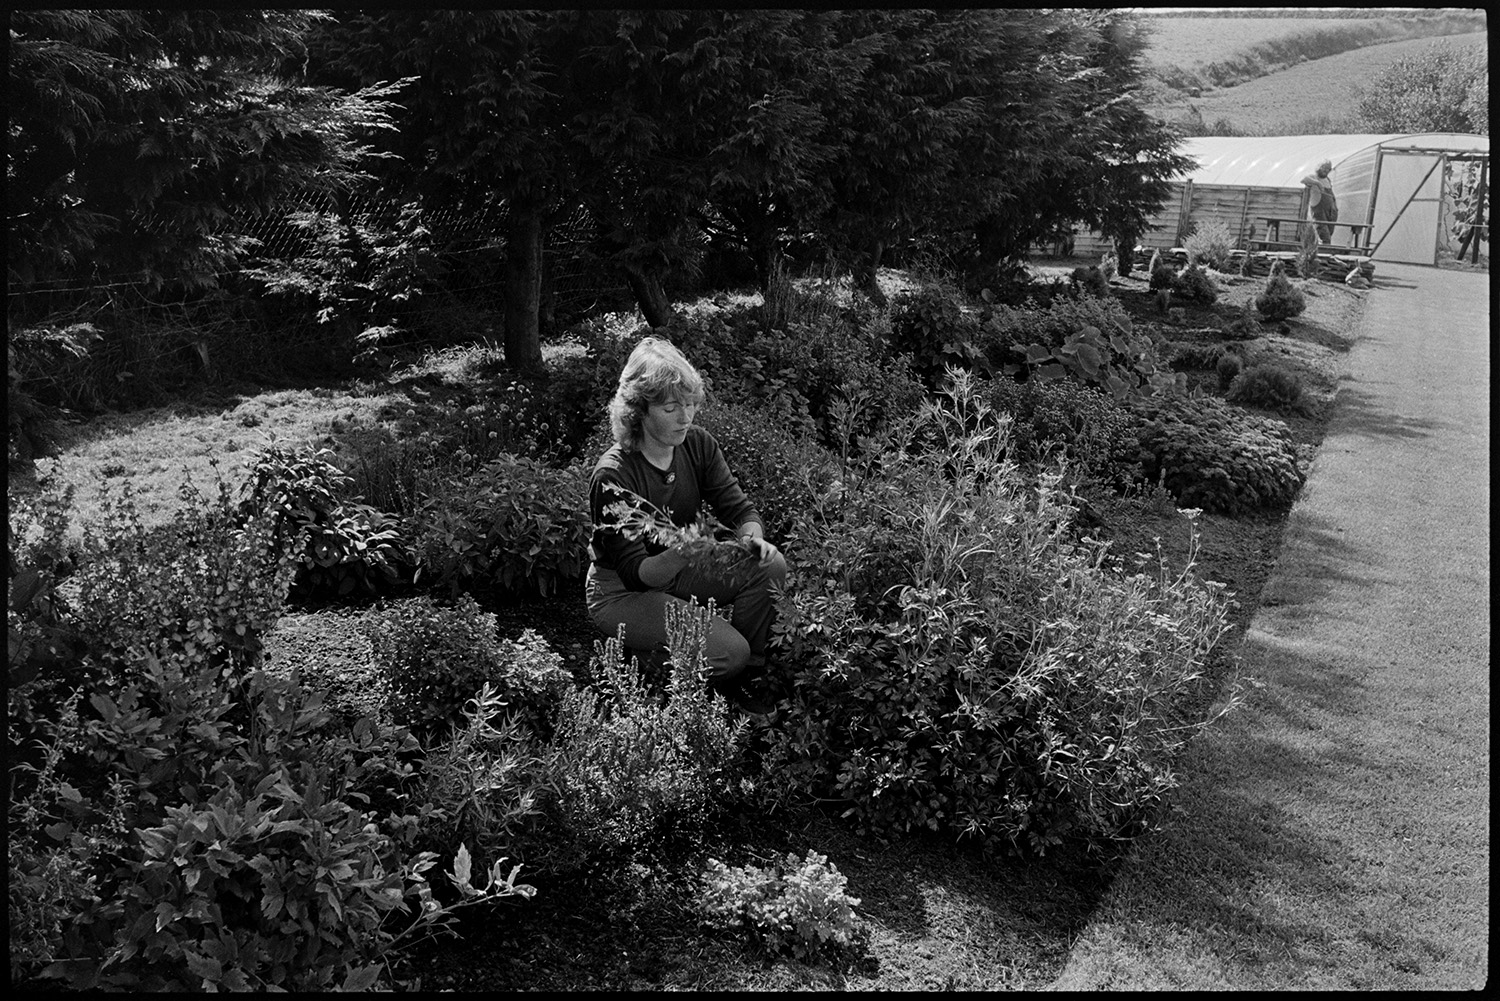 Woman working on herb farm herb garden and shop, chickens. <br /> [Sally Hollis checking herbs in a bed at Darracott Farm, Welcombe. A polytunnel can be seen in the background.]